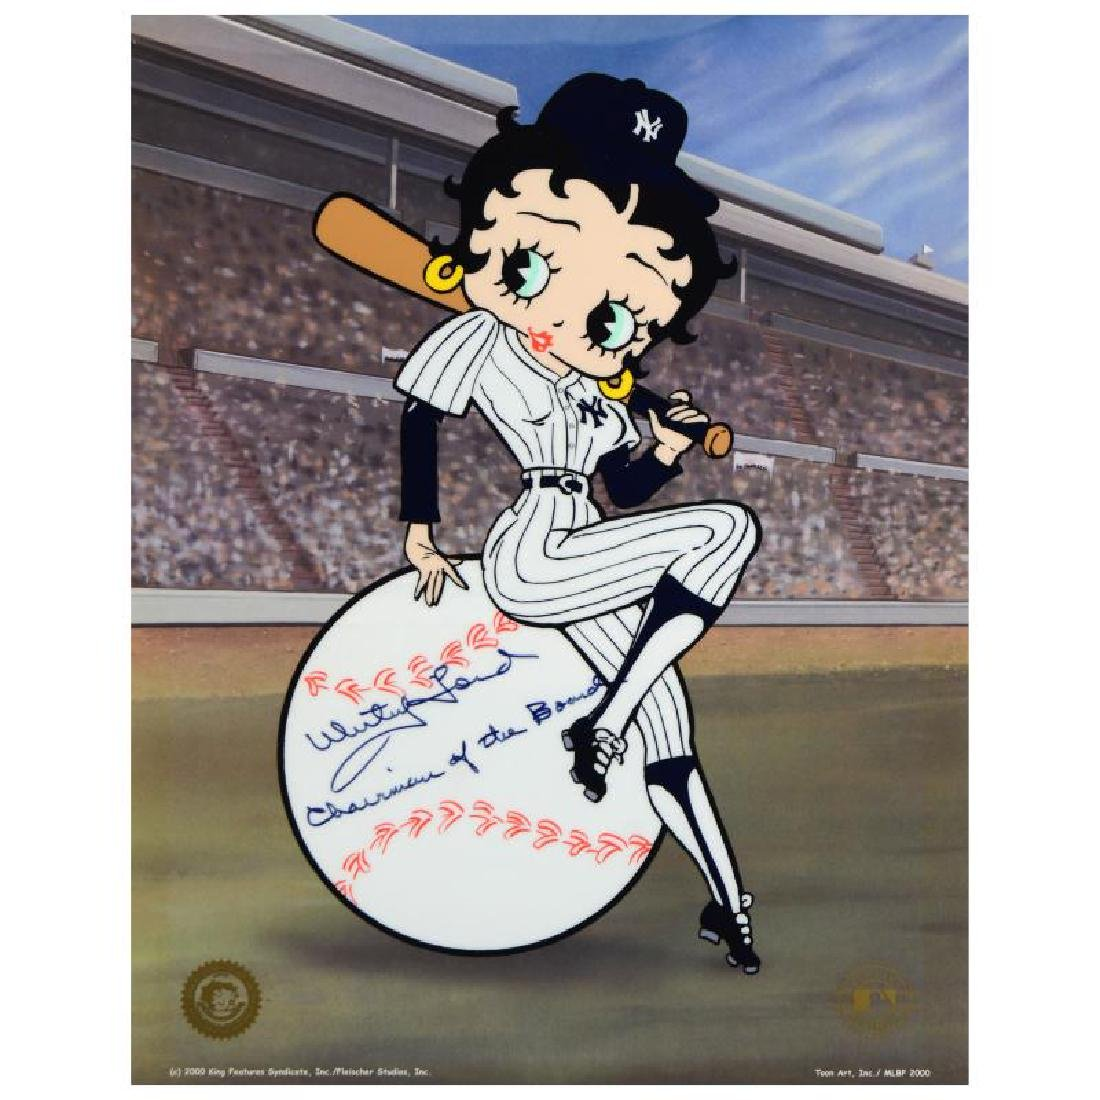 Betty on Deck - Yankees by King Features Syndicate,